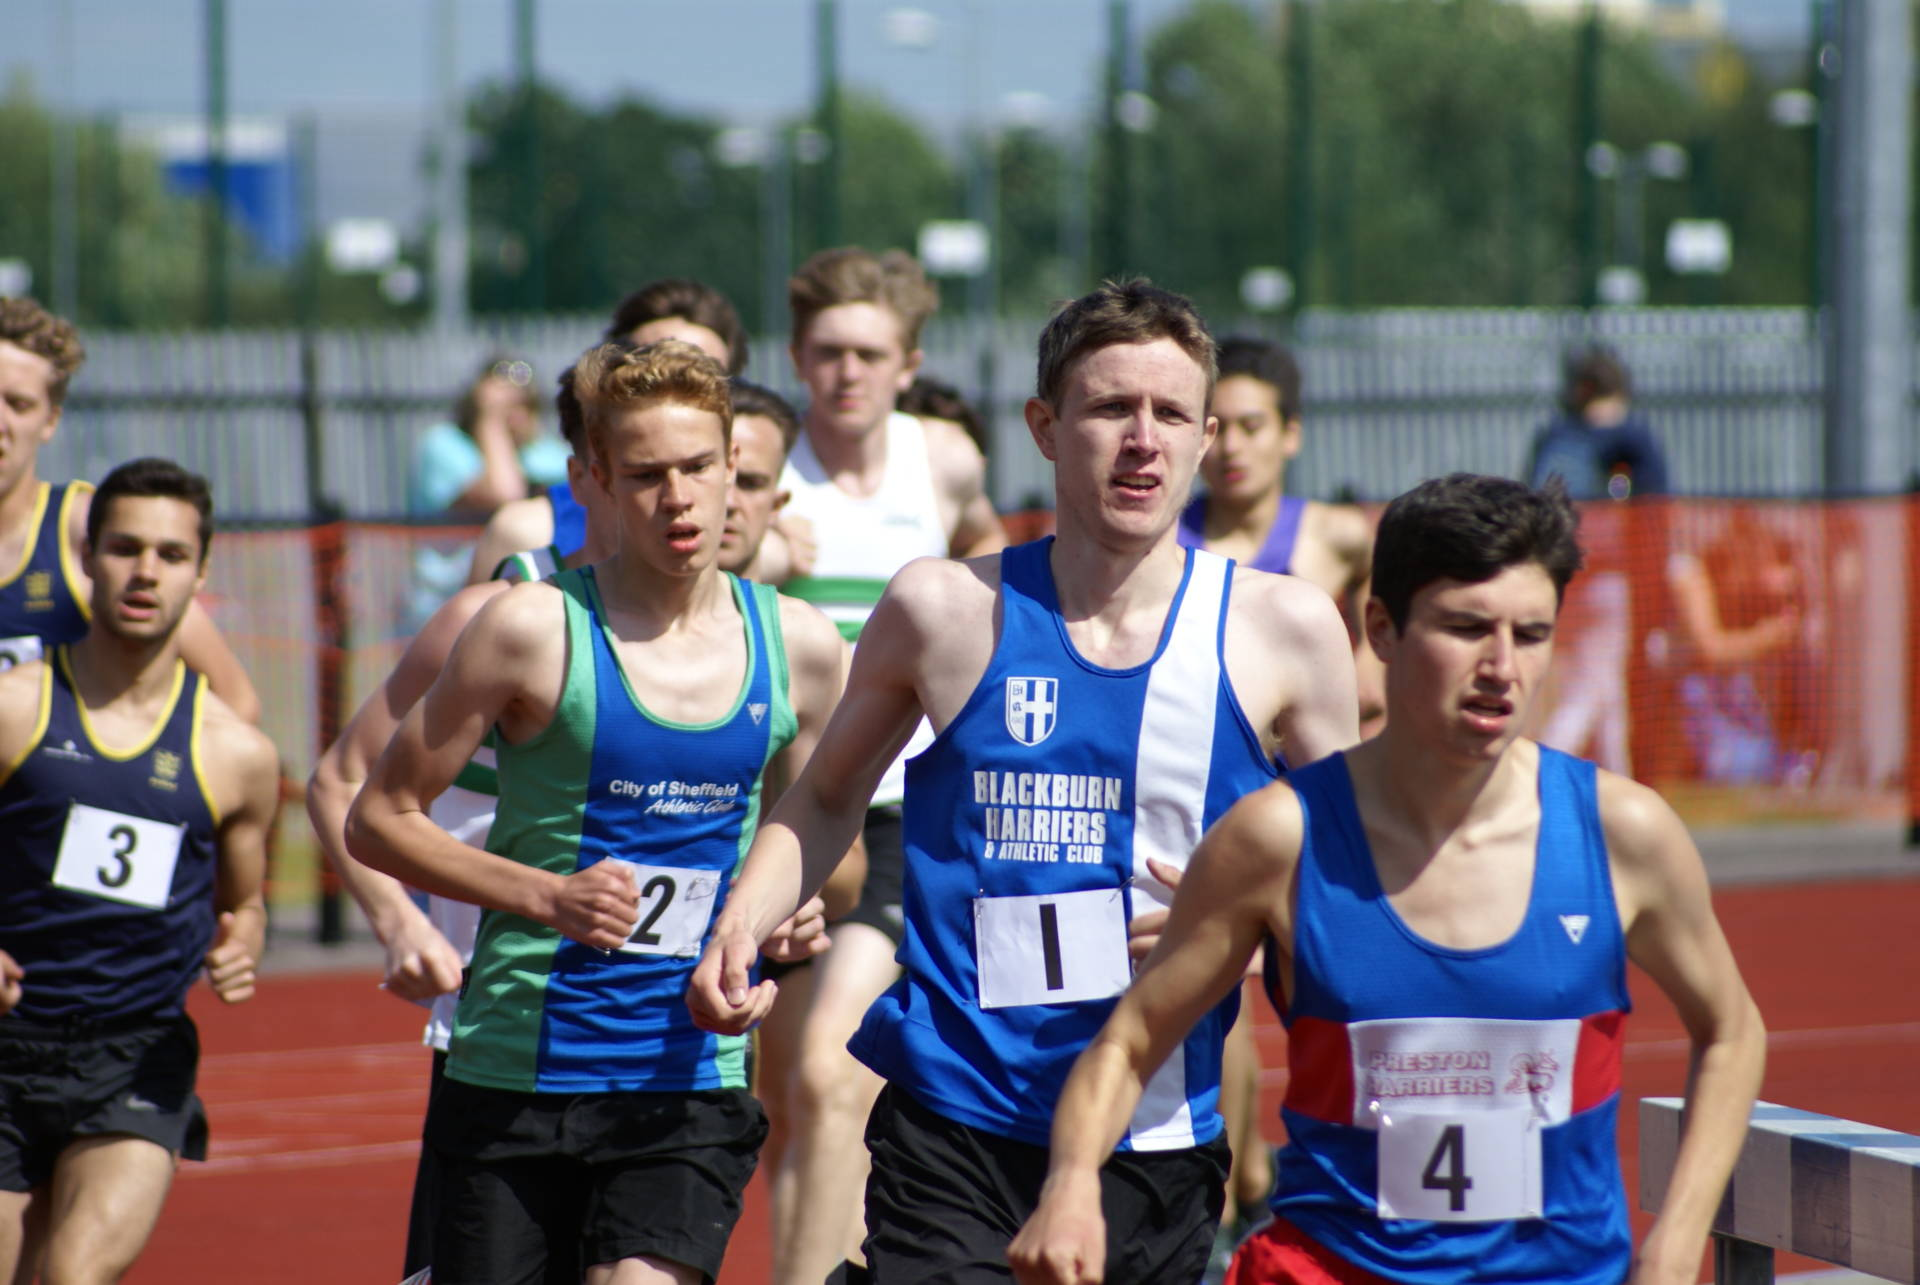 On Track & Field with the Harriers – Mid Lancs – Northern League – BMC at Stretford